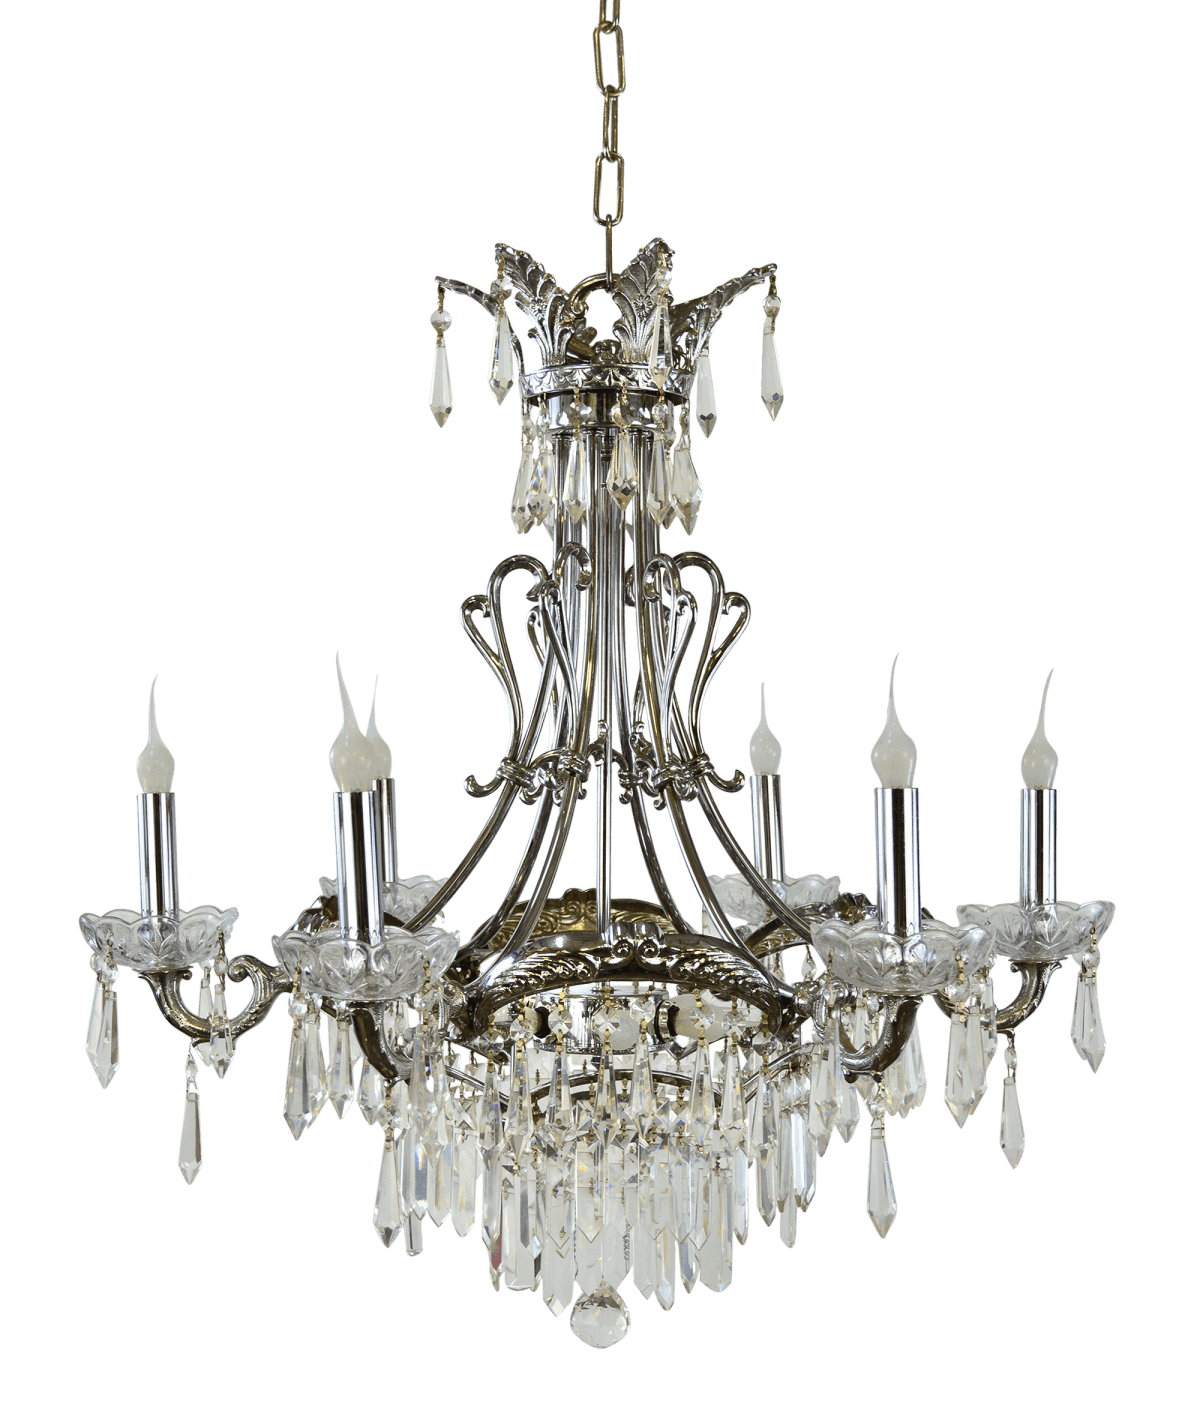 banner royalty free library Chandelier clipart. Vintage transparent png stickpng